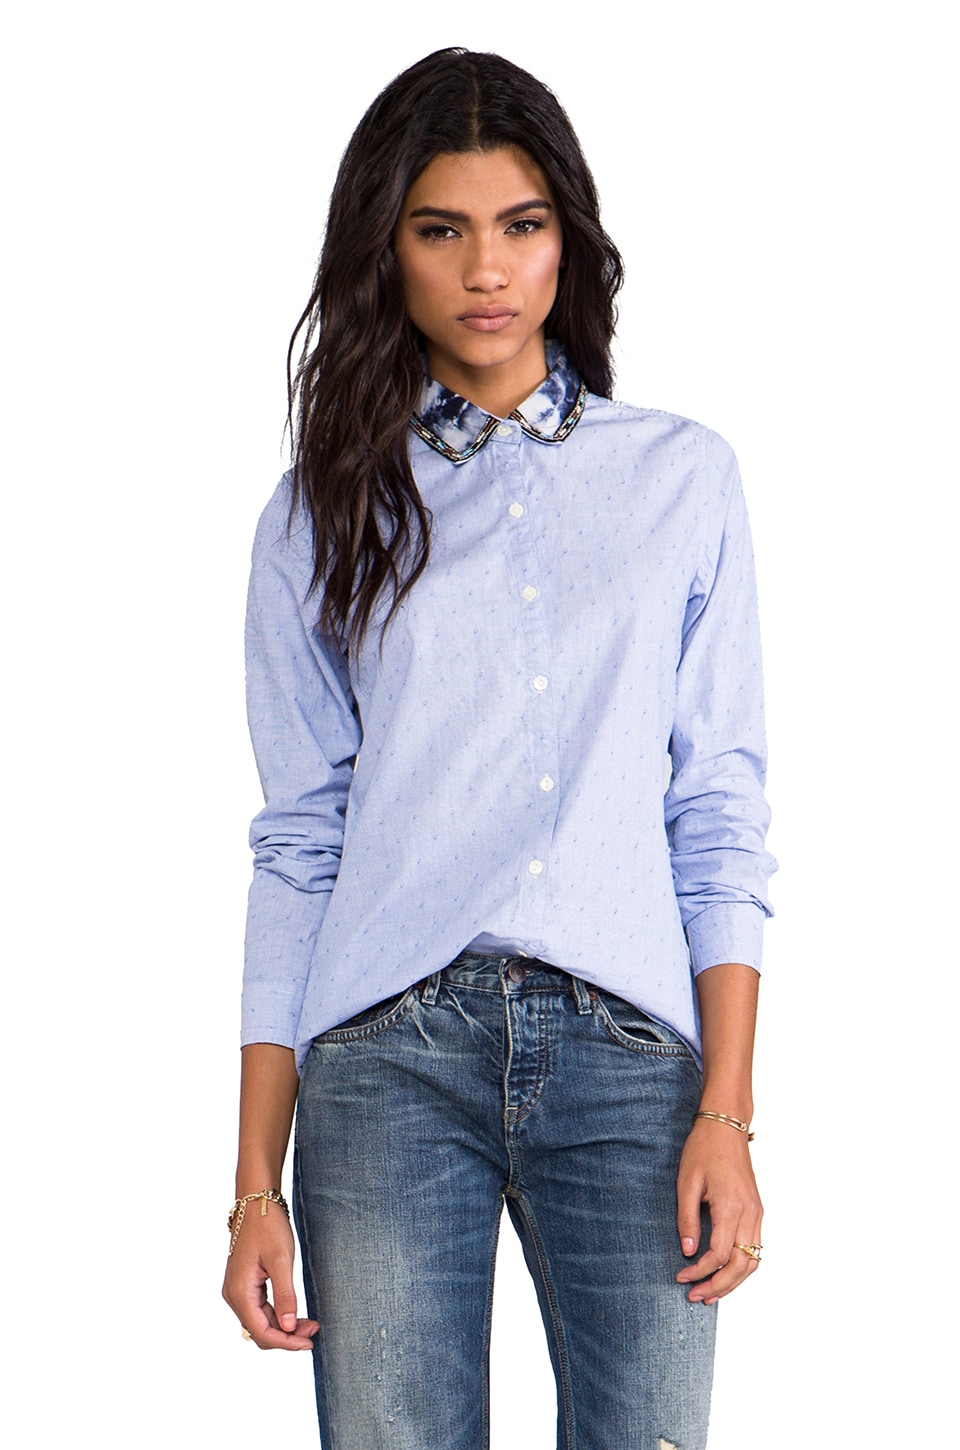 Maison Scotch Button Down Shirt with Embellished Collar in Blue